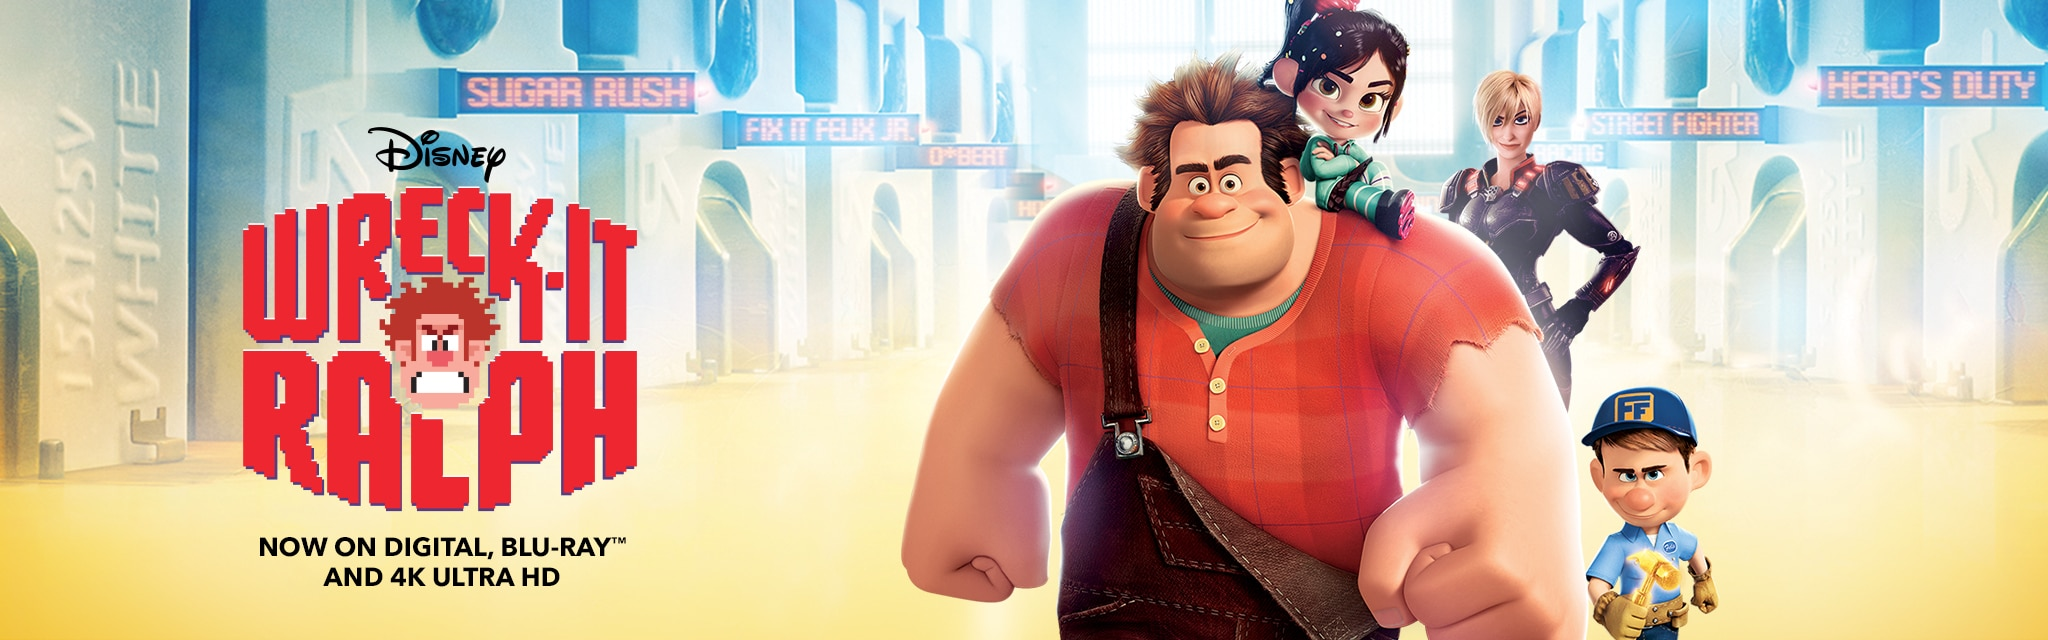 Wreck It Ralph-Homepage Update